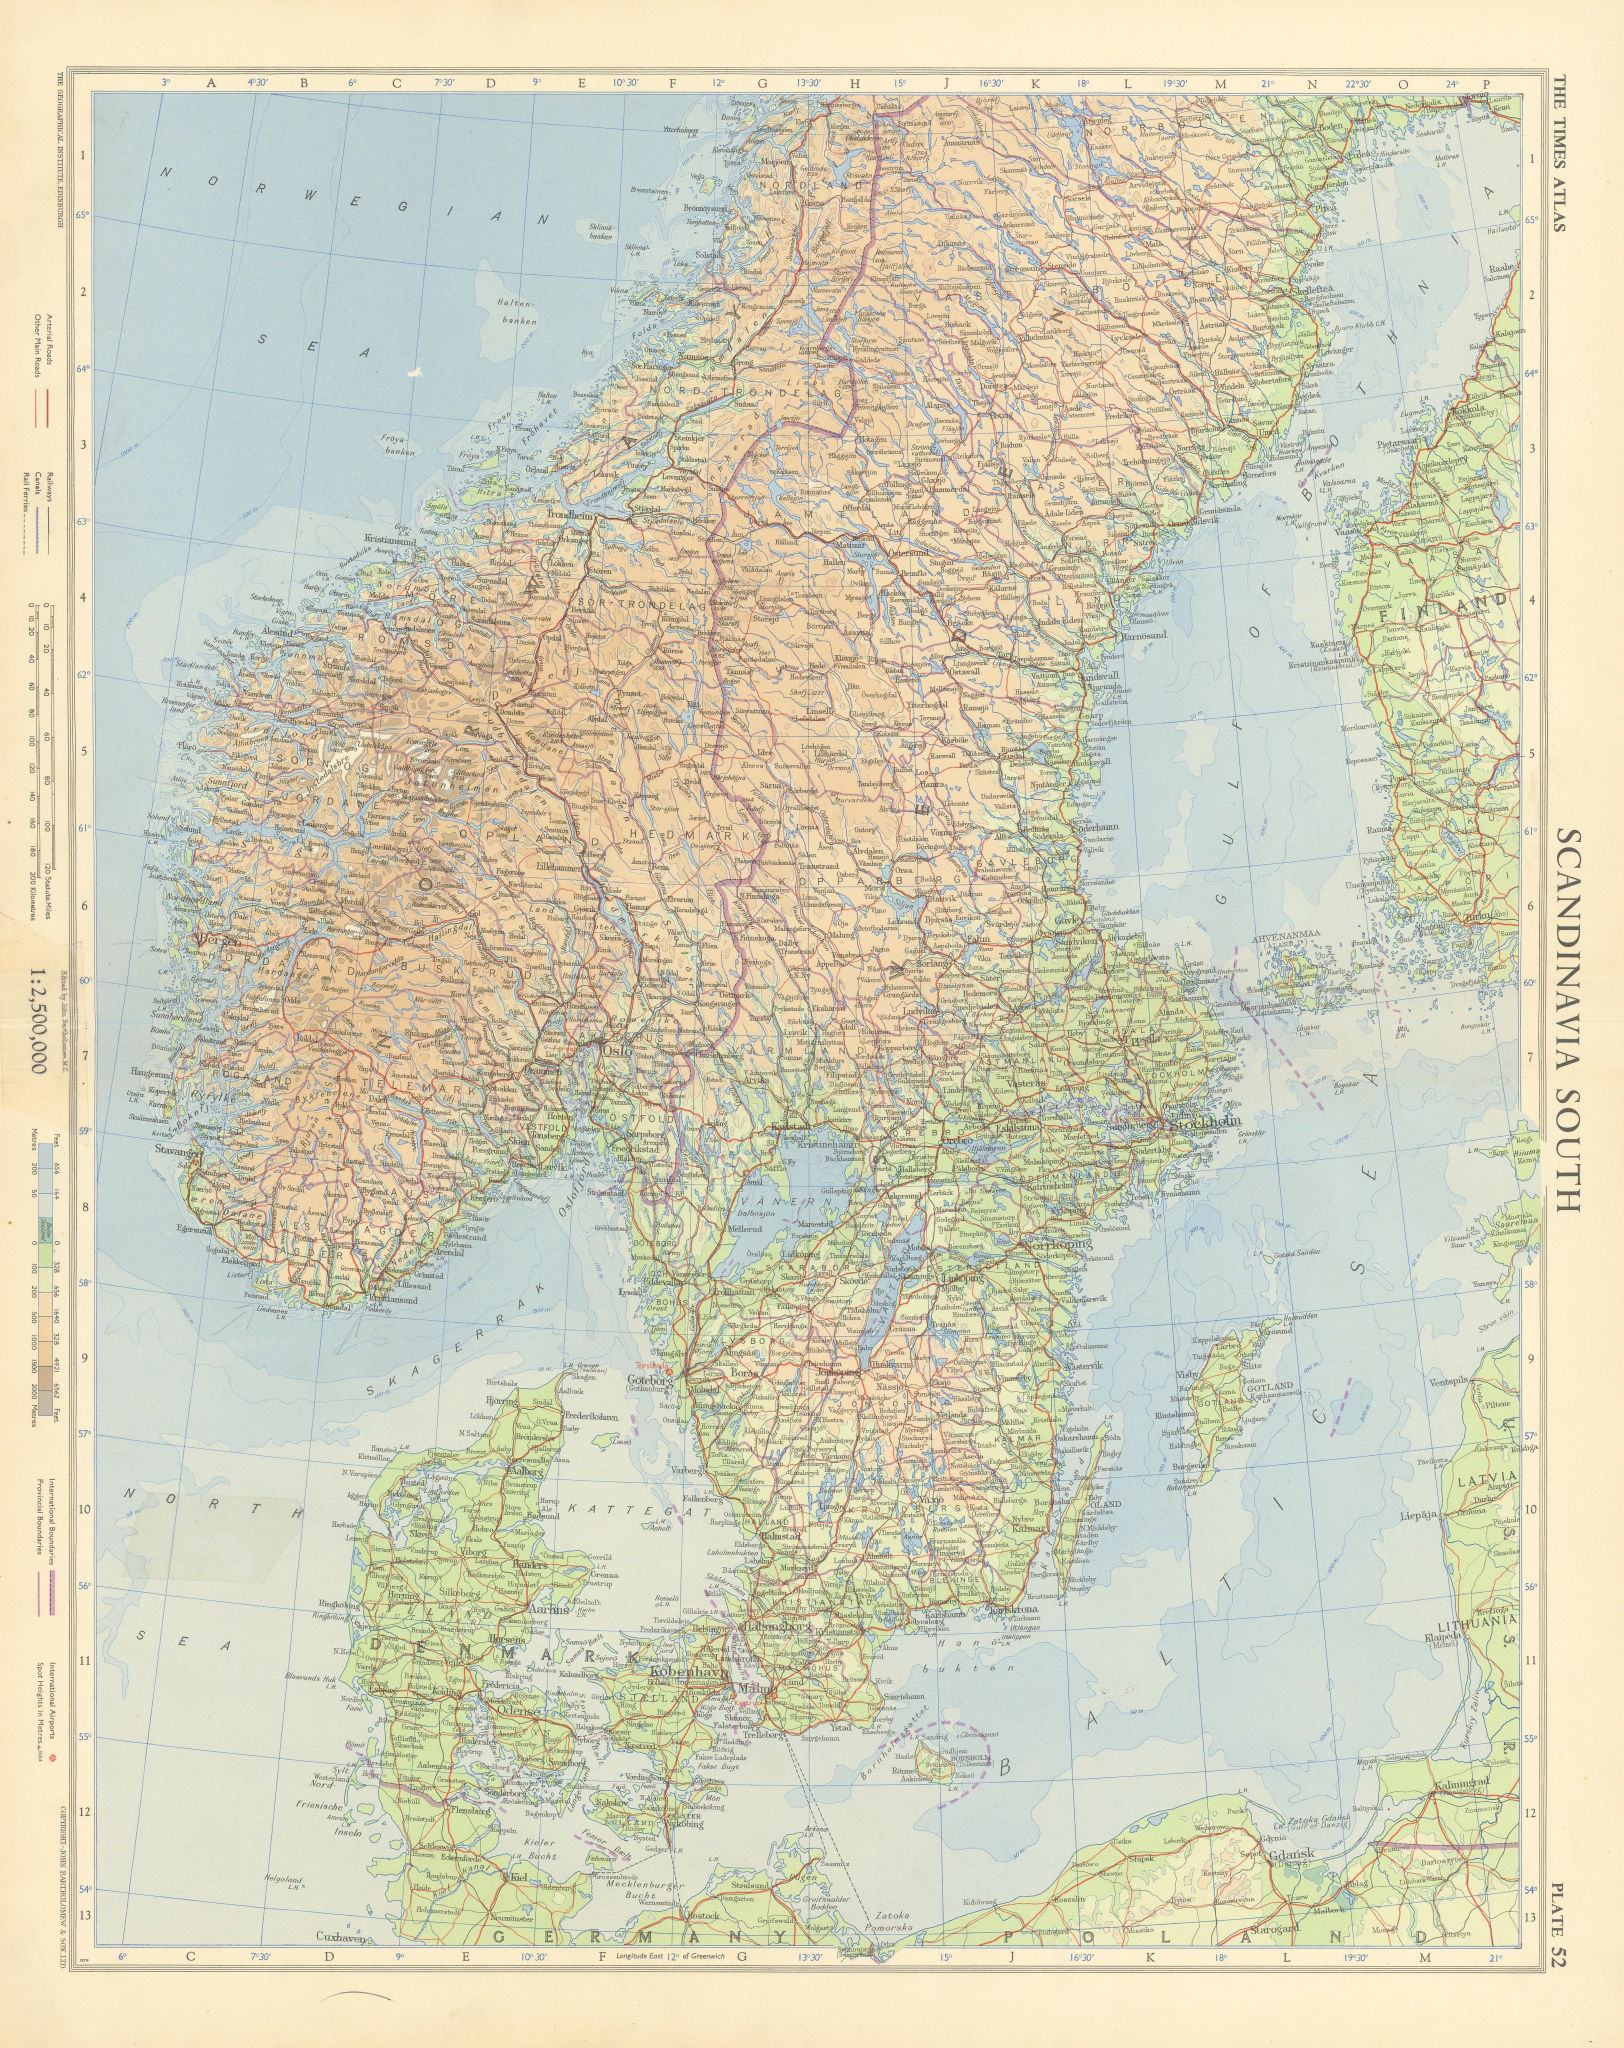 Southern Scandinavia. Norway Sweden Denmark. TIMES 1955 old vintage map chart